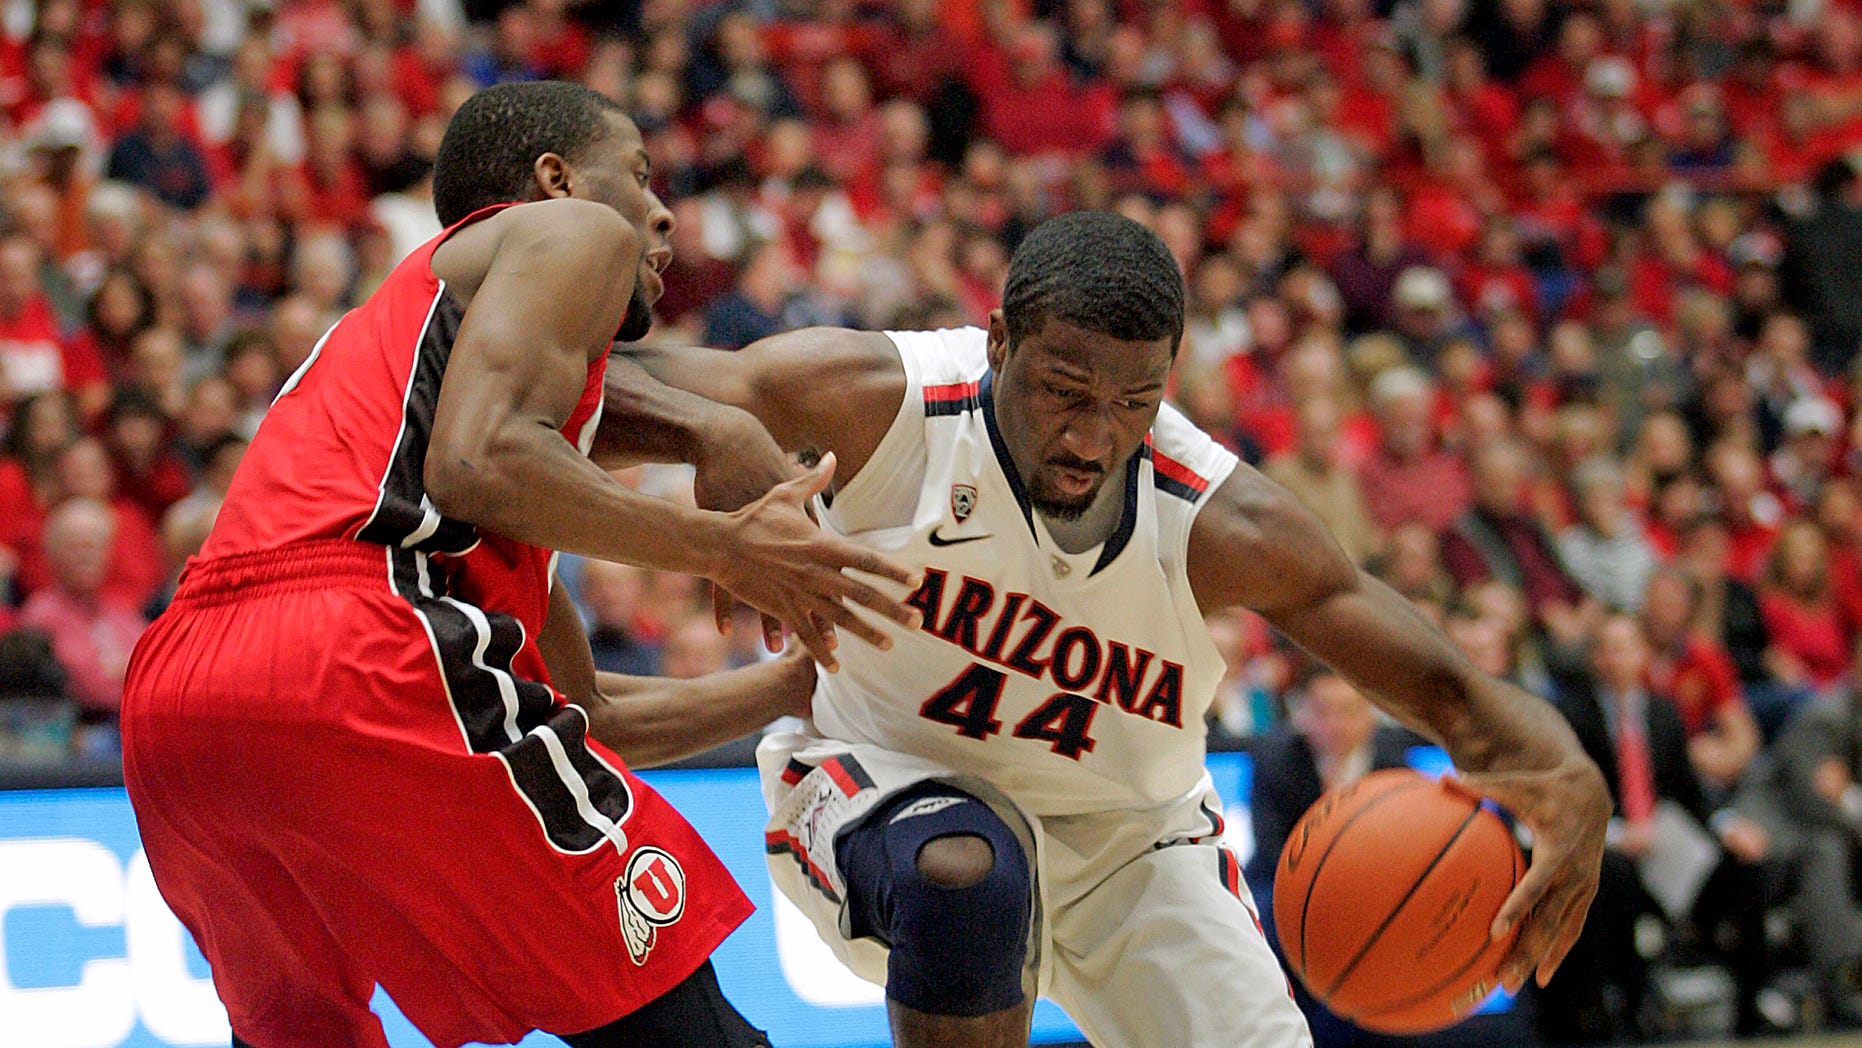 Arizona's Soloman Hill, (44) drives against the pressing defense of Utah's Jarred DuBois, left, during the first half of an NCAA college basketball game at McKale Center in Tucson, Ariz., Jan. 5, 2013. (AP Photo/John Miller)